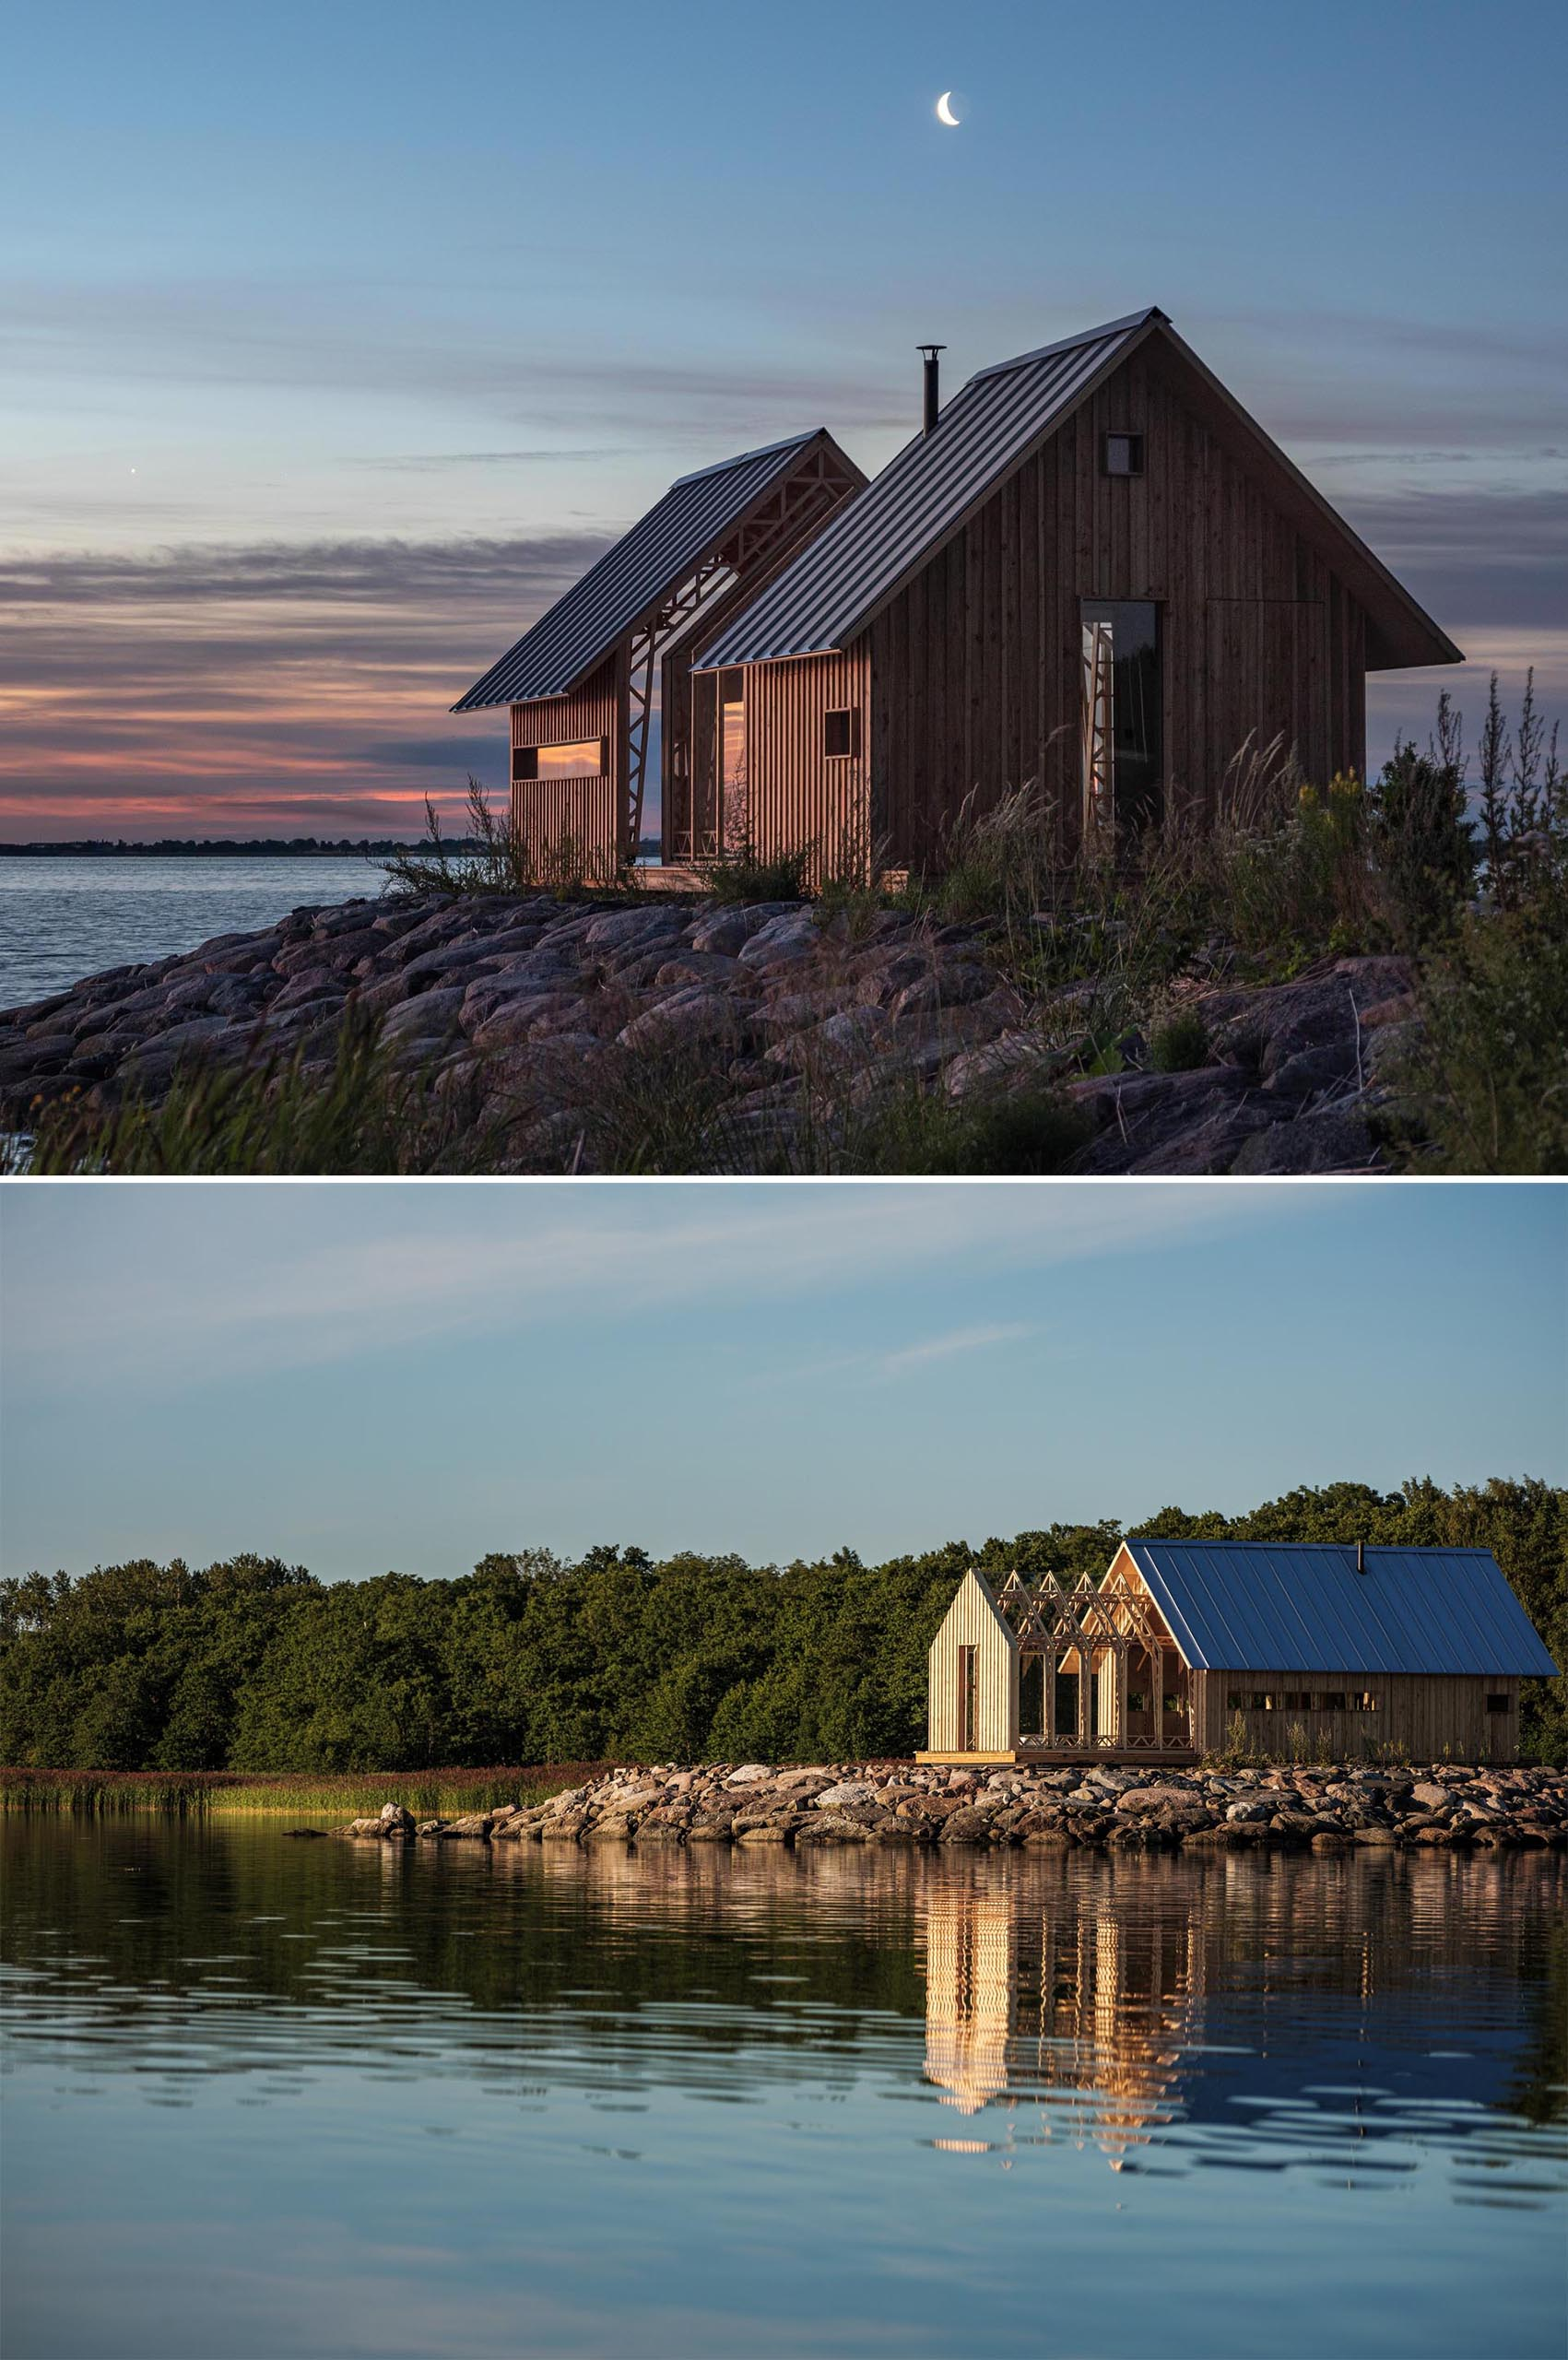 A versatile small and modern wood cabin with two different 'shells' as outer walls, which are supported on rails, allowing the interior to be open to the outdoors.